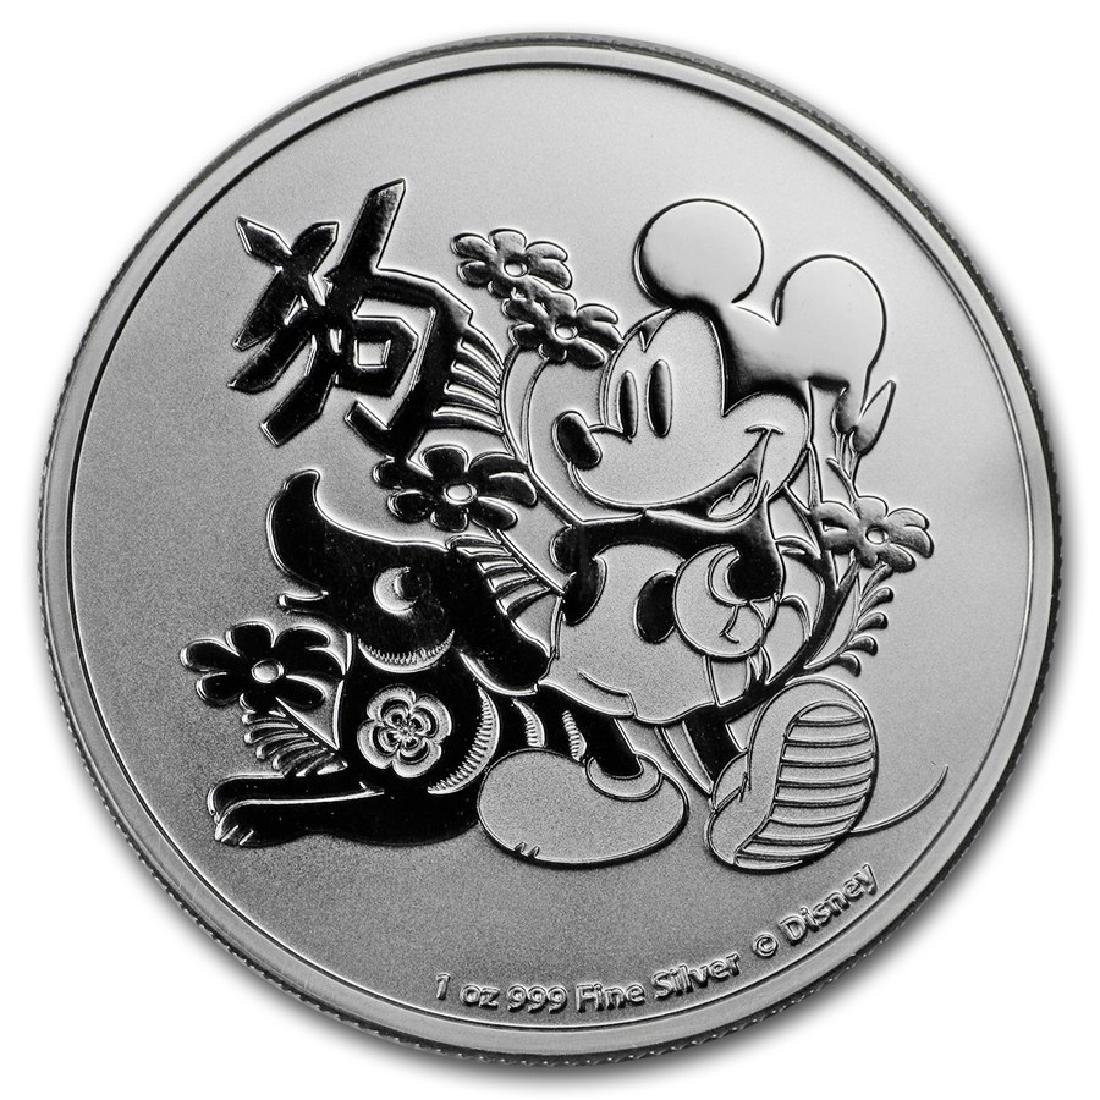 2018 $2 Disney Lunar Year of the Dog Niue Silver Coin